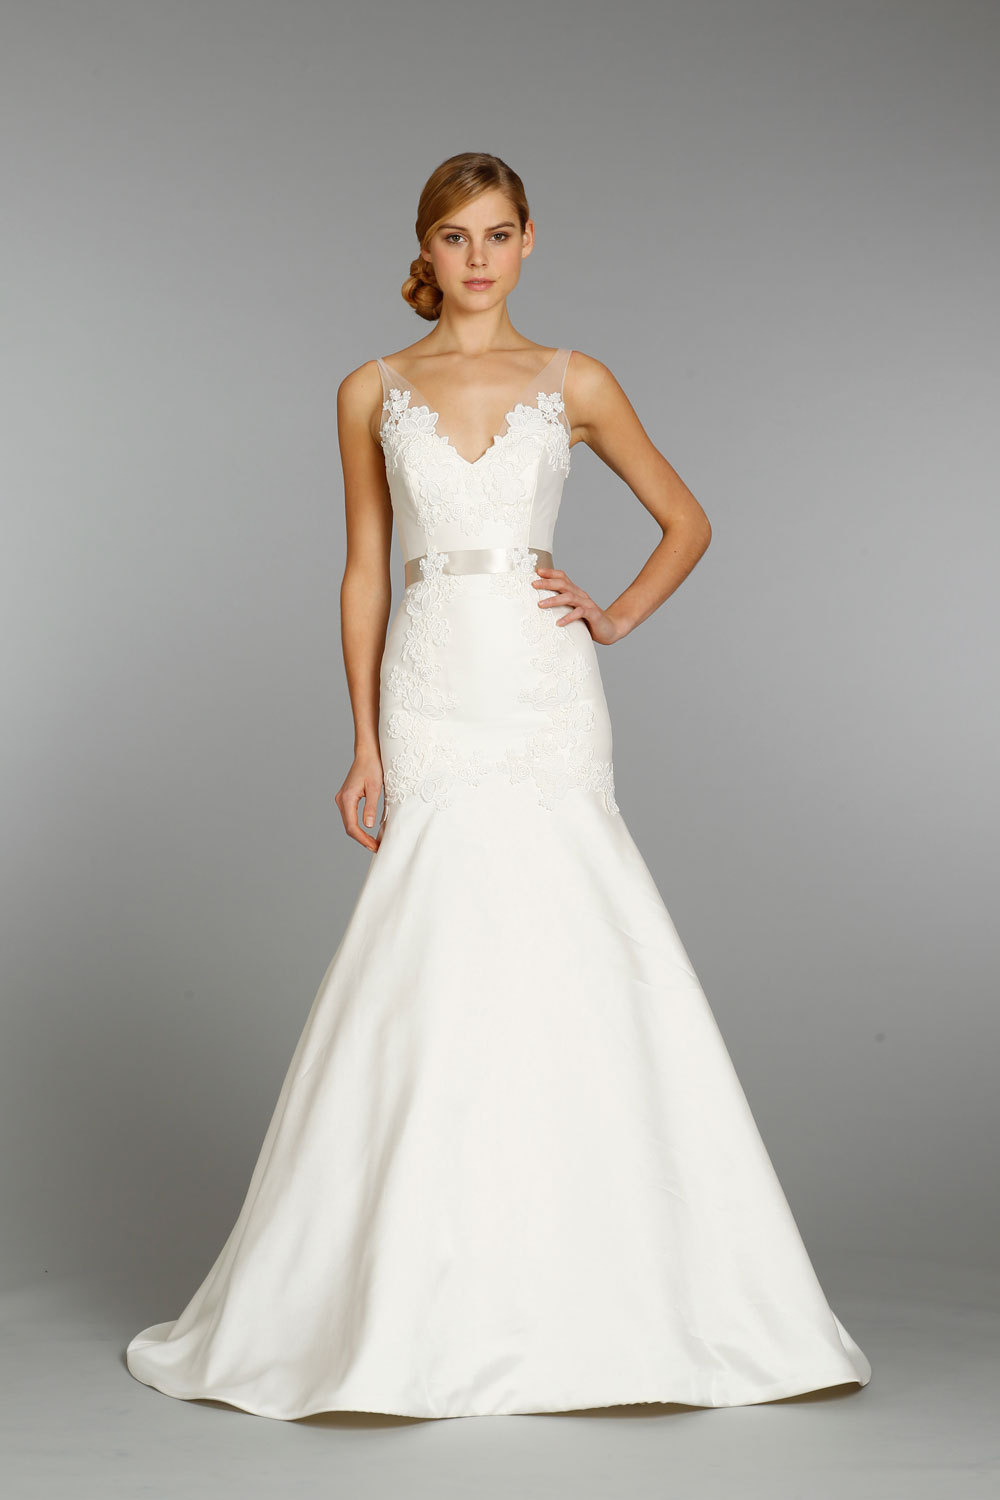 Tara-keely-wedding-dress-fall-2013-bridal-2352.full